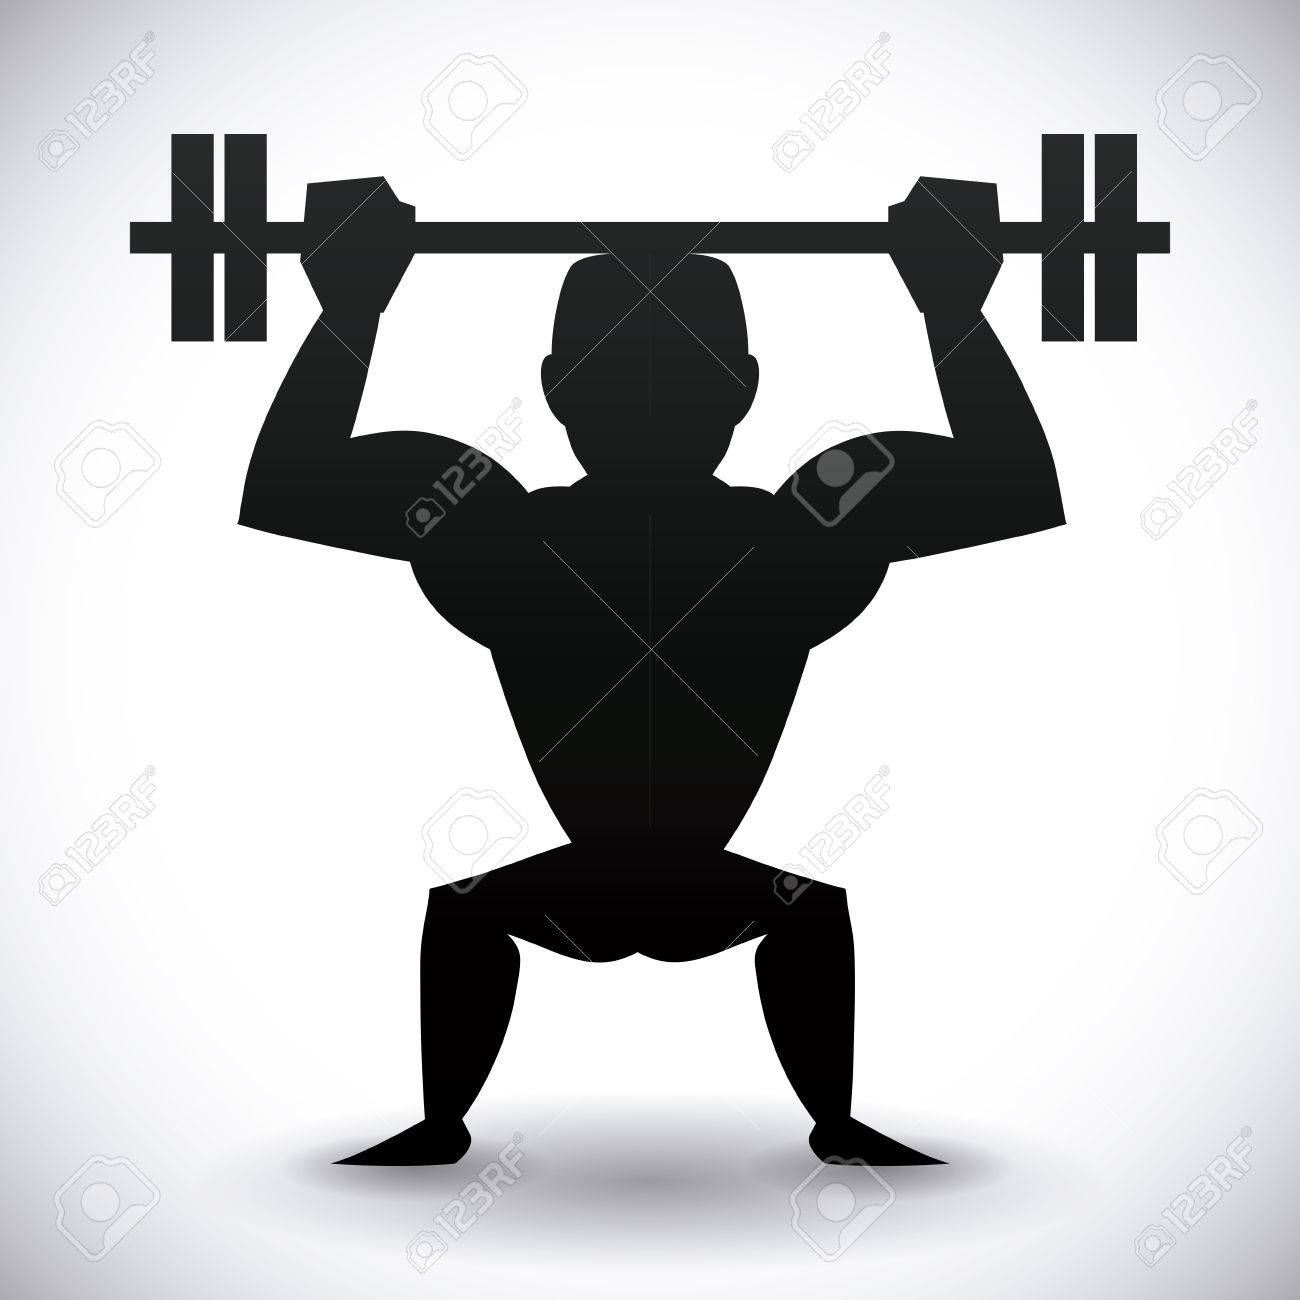 Bodybuilding Graphic Design , Vector Illustration Royalty Free ... for Bodybuilding Graphic Design  45gtk